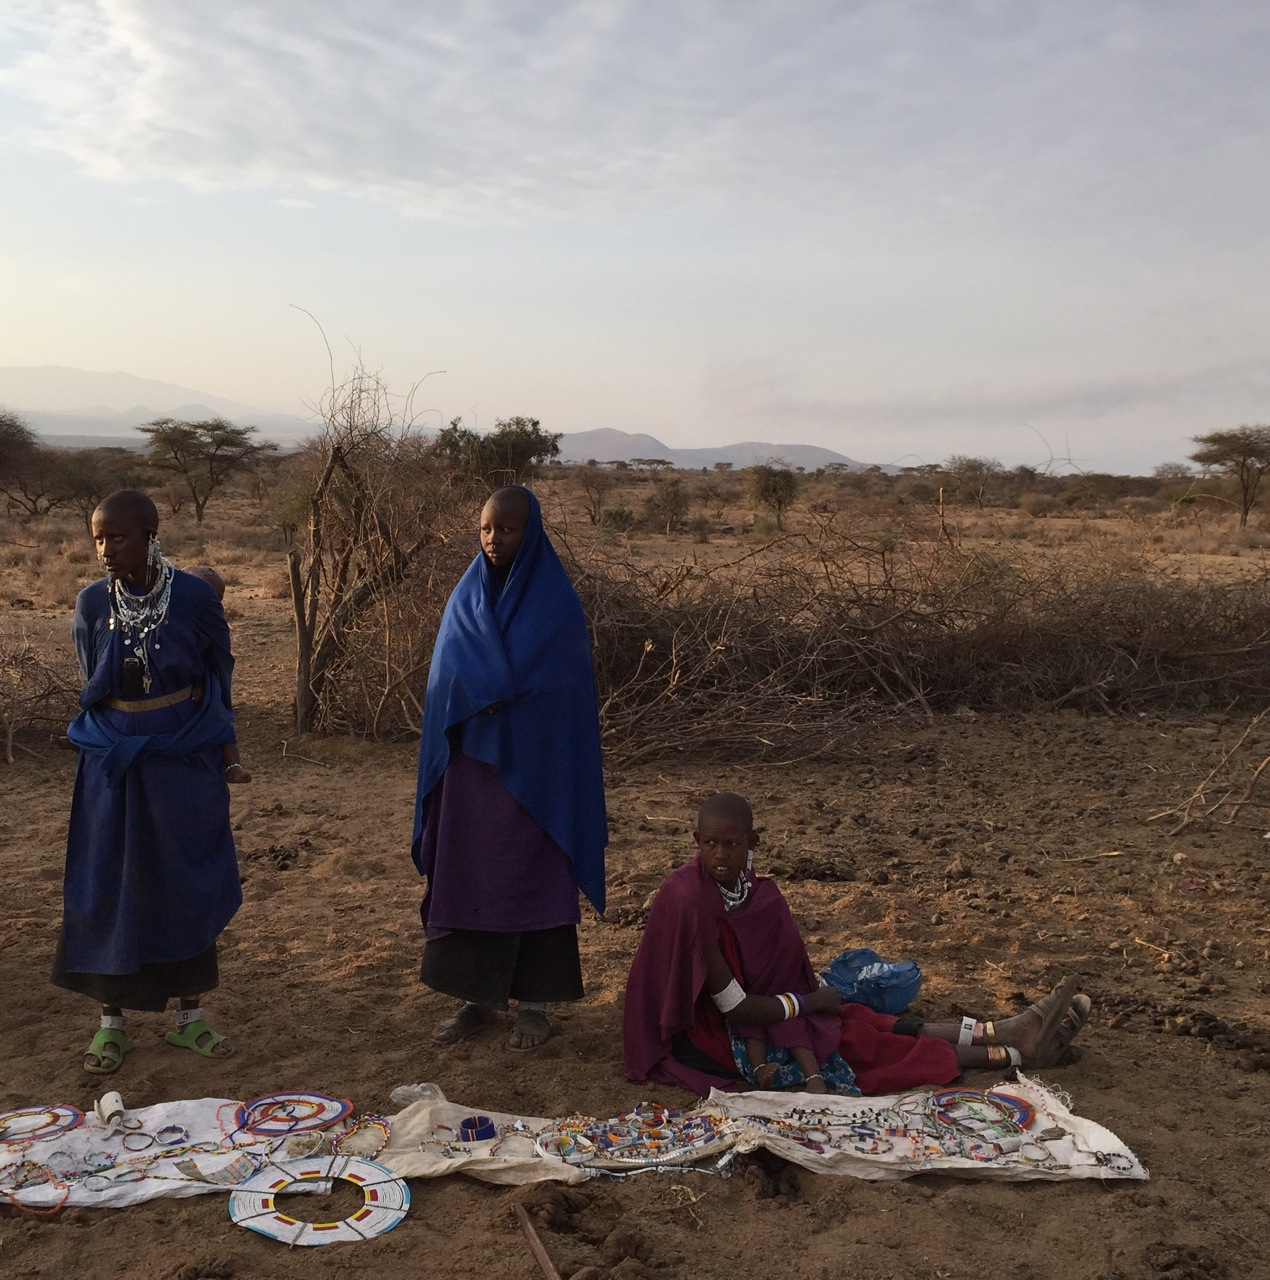 Masai women display their handmade beaded jewelry for sale to our tour group after our visit.